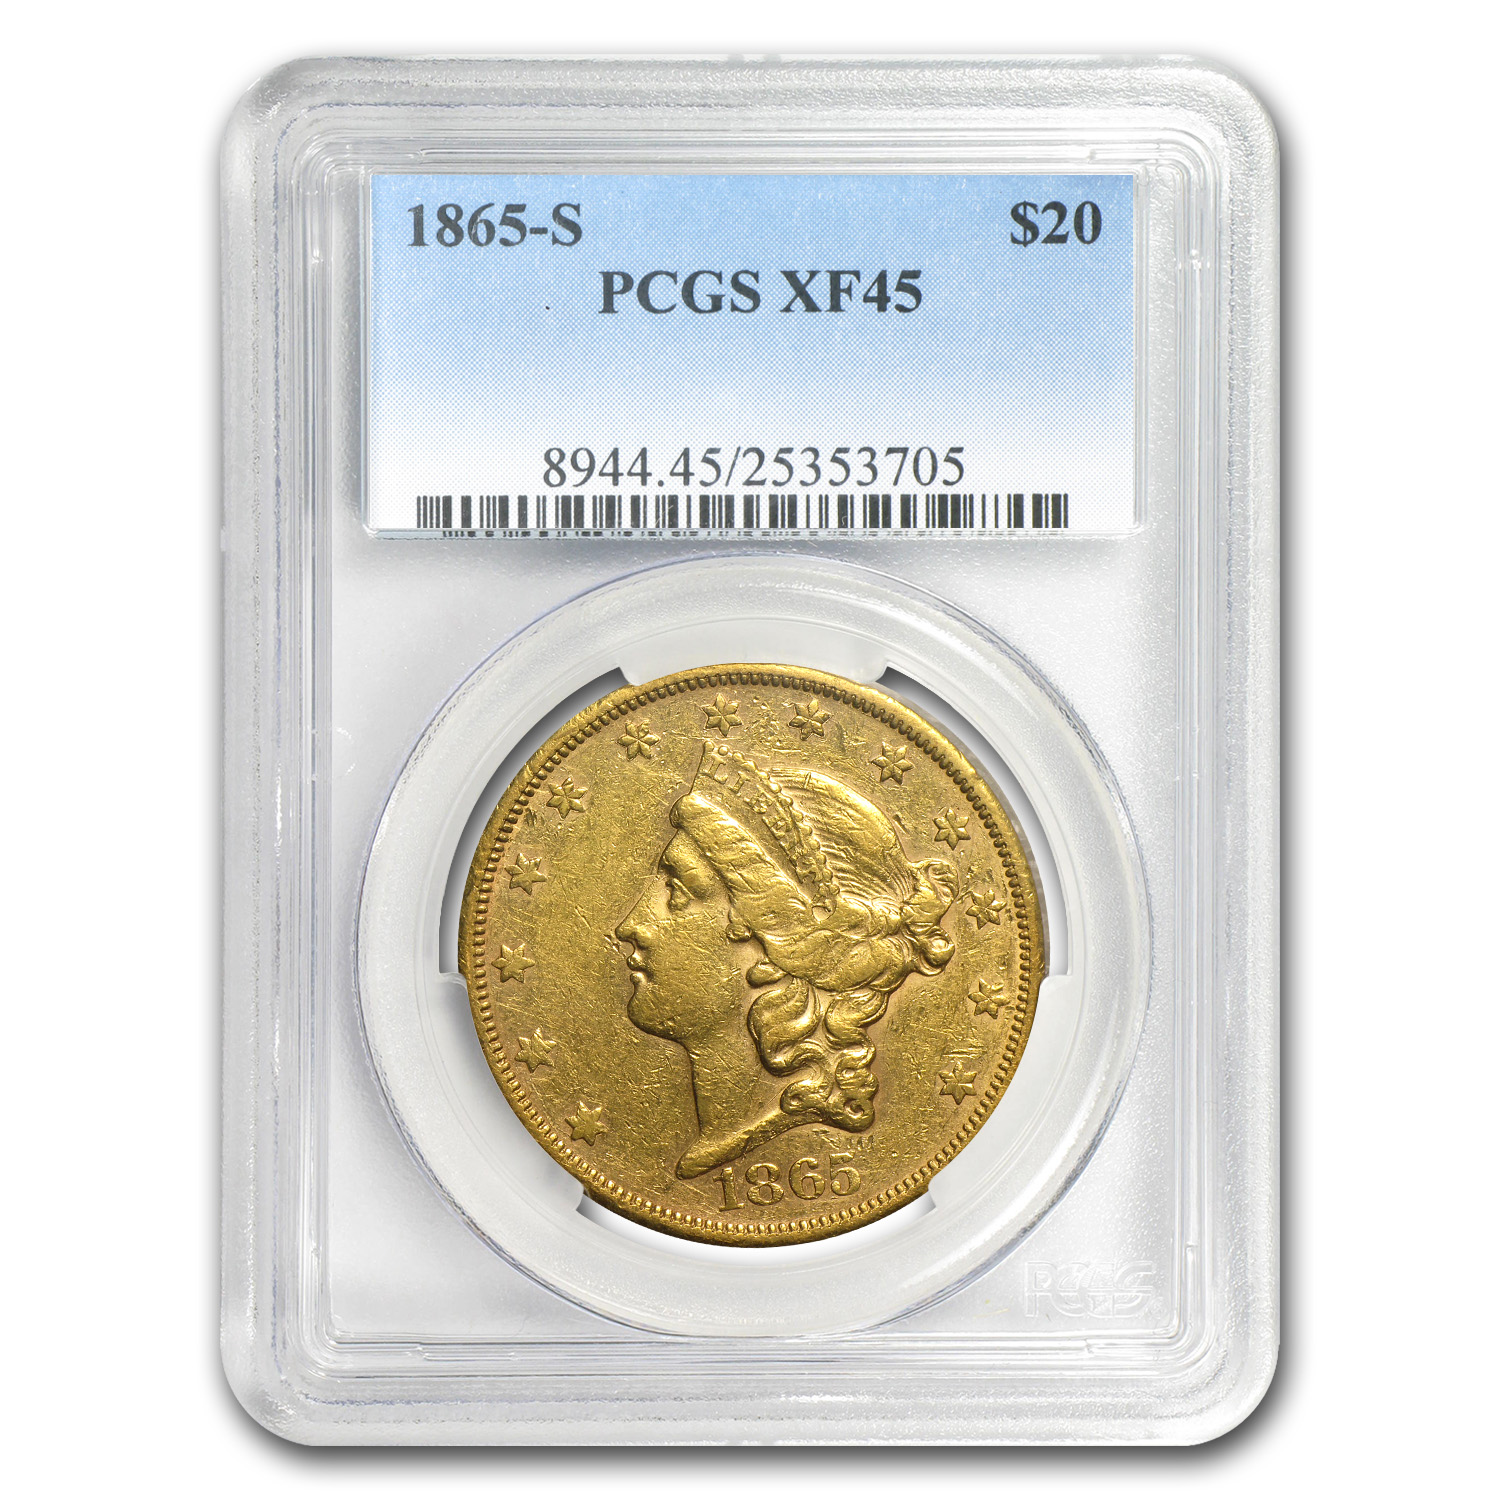 1865-S $20 Gold Liberty Double Eagle - XF-45 PCGS